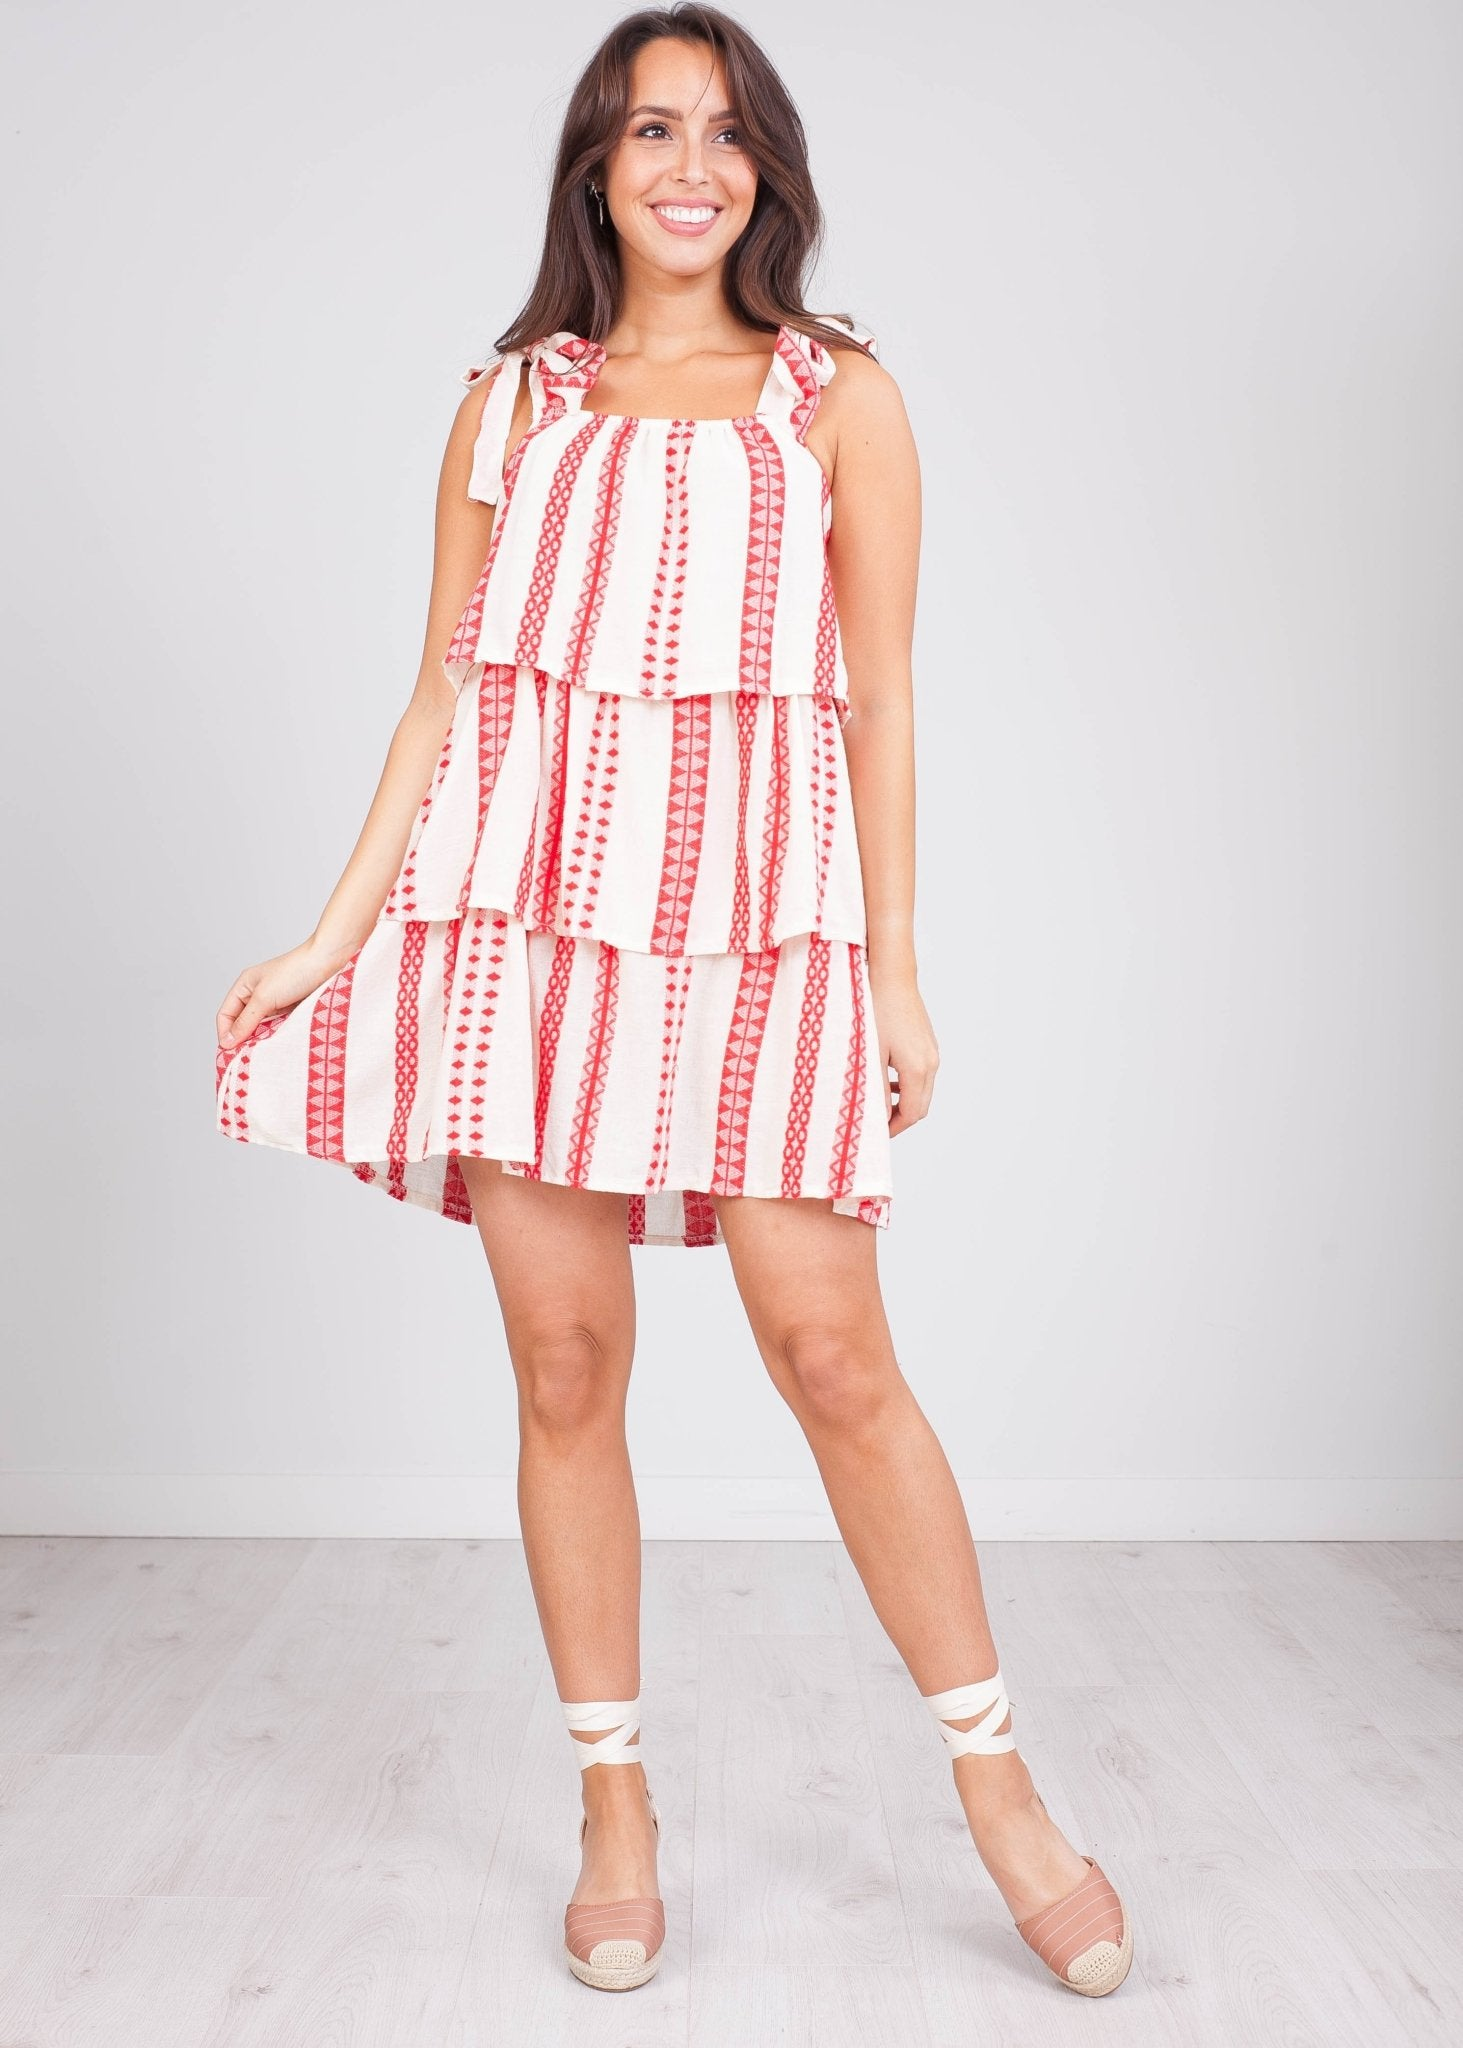 Charlee Red & Cream Ruffle Dress - The Walk in Wardrobe